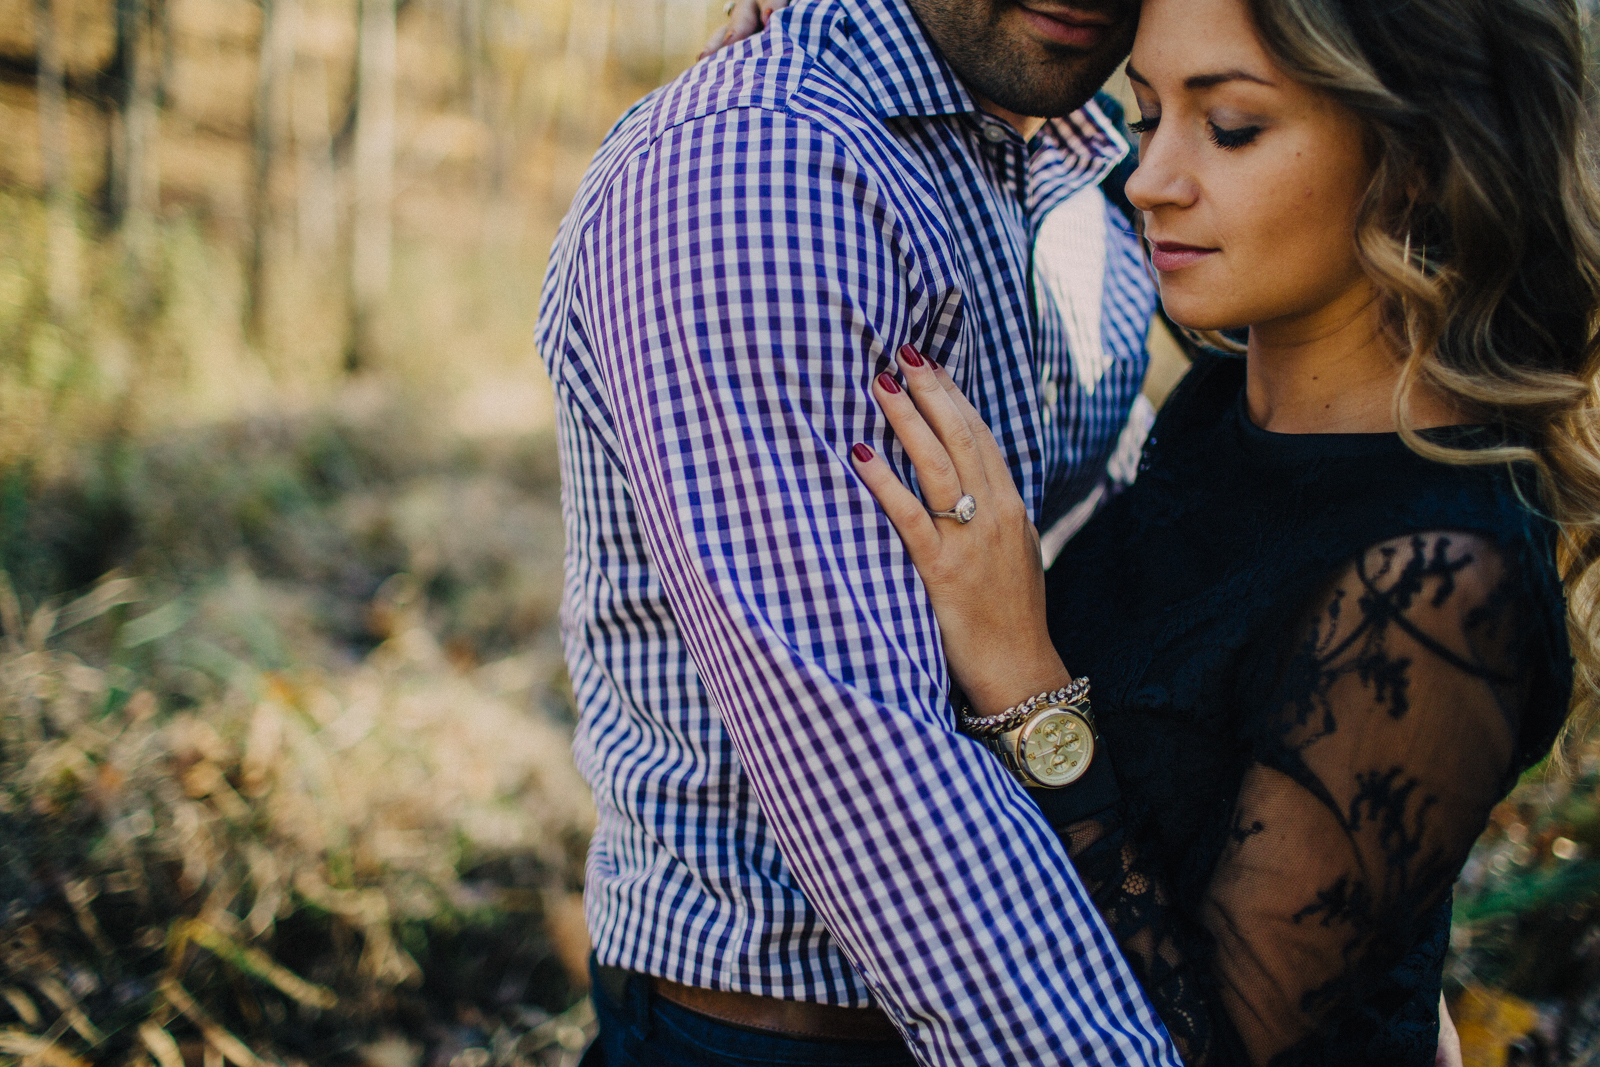 matea state park indiana fort wayne engagement session sarah cusson photography-4.jpg